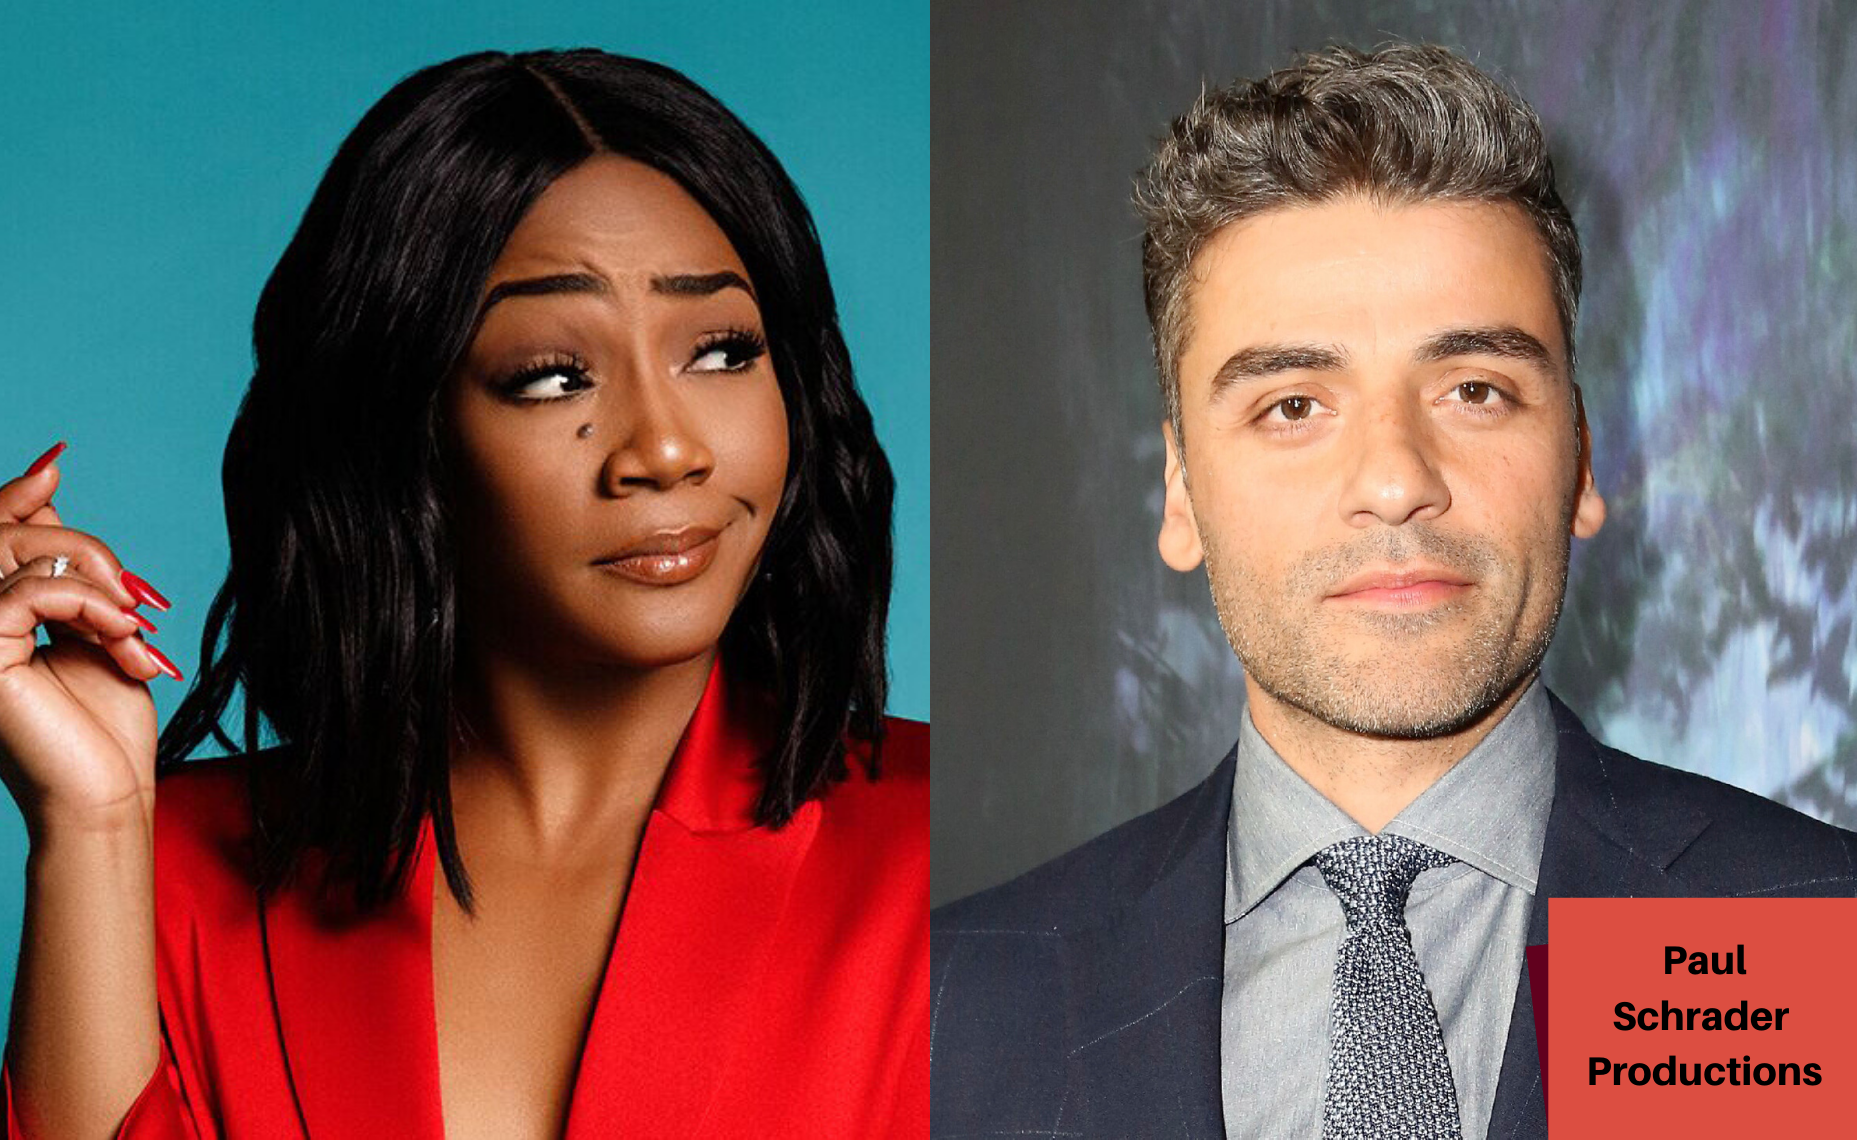 the card counter, paul schrader productions, Tiffany Haddish, Oscar Issac, diversity, hollywood, inclusive, marketing, upcoming productions, tv shows, films